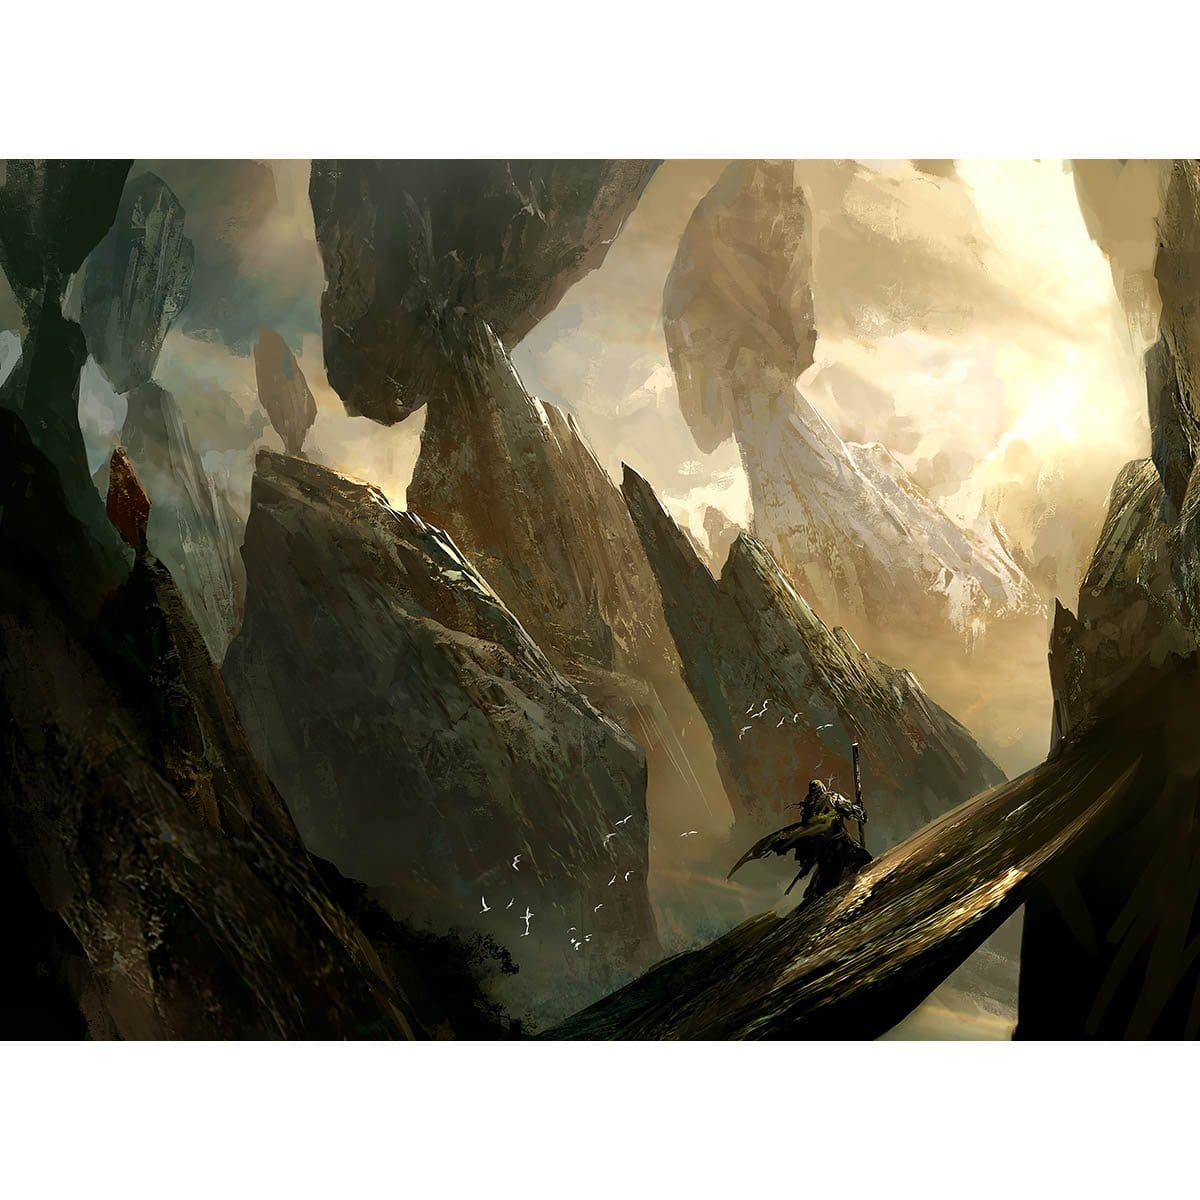 Teetering Peaks Print - Print - Original Magic Art - Accessories for Magic the Gathering and other card games